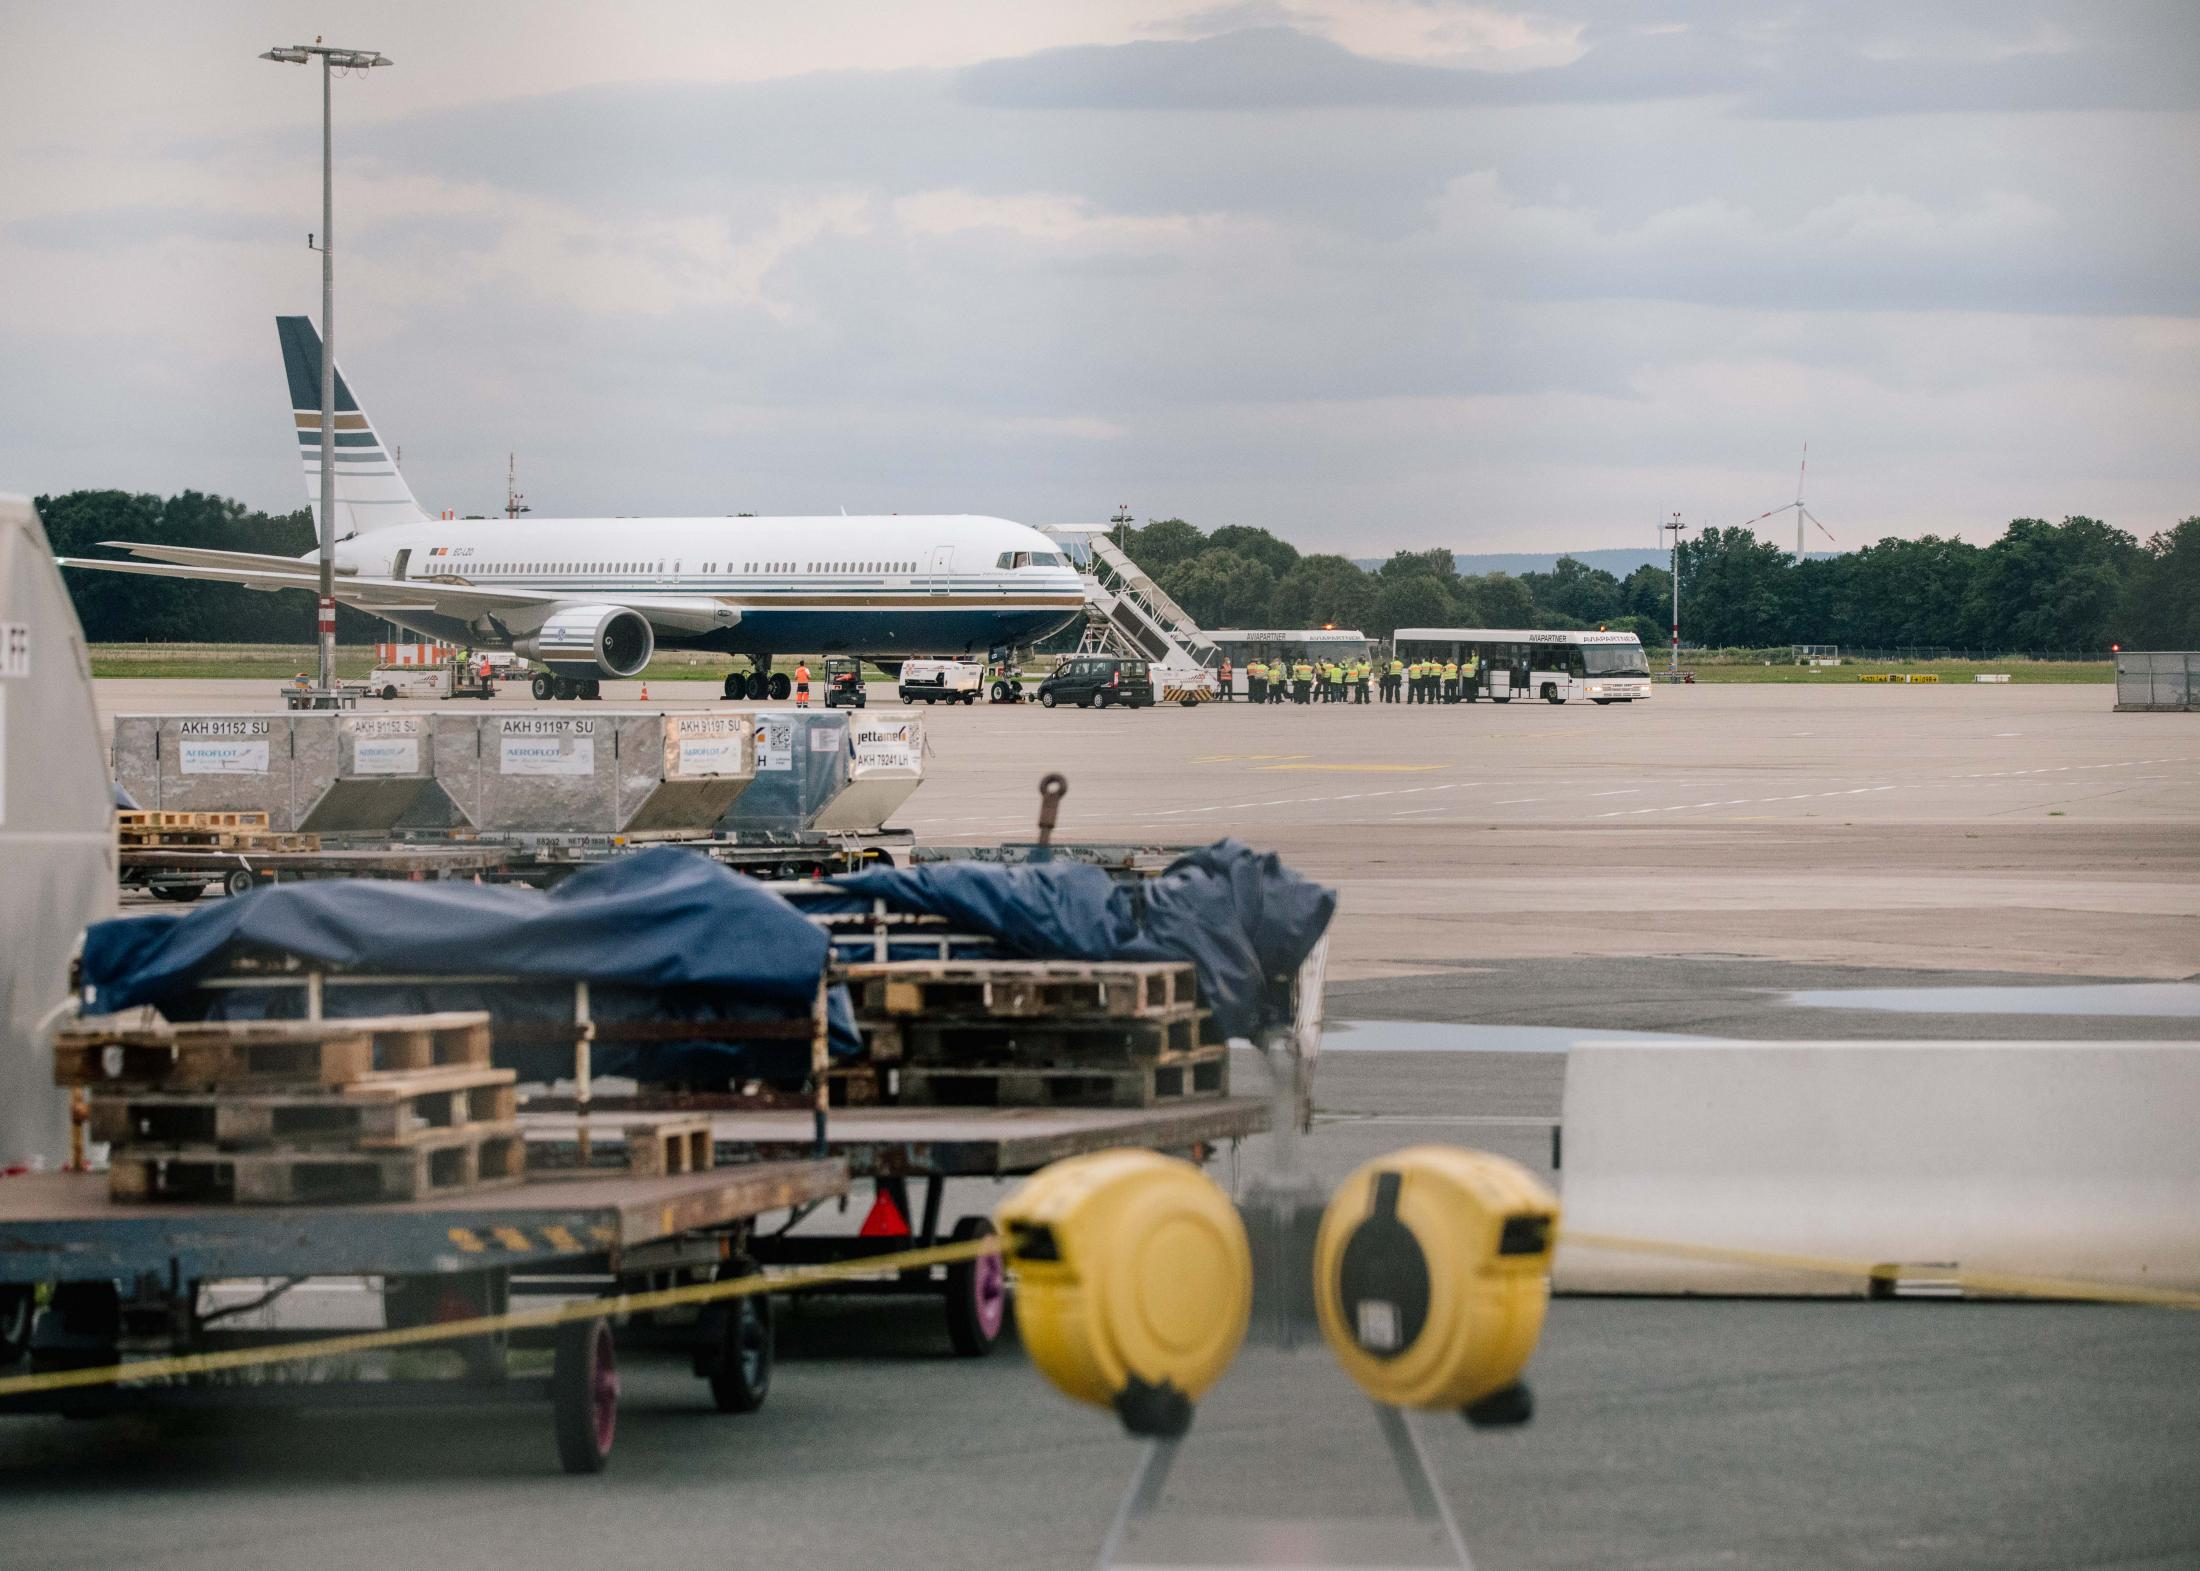 Charter plane of Spanish airline Privilege Style is boarded on the airfield of Hanover. July 6th, 2021